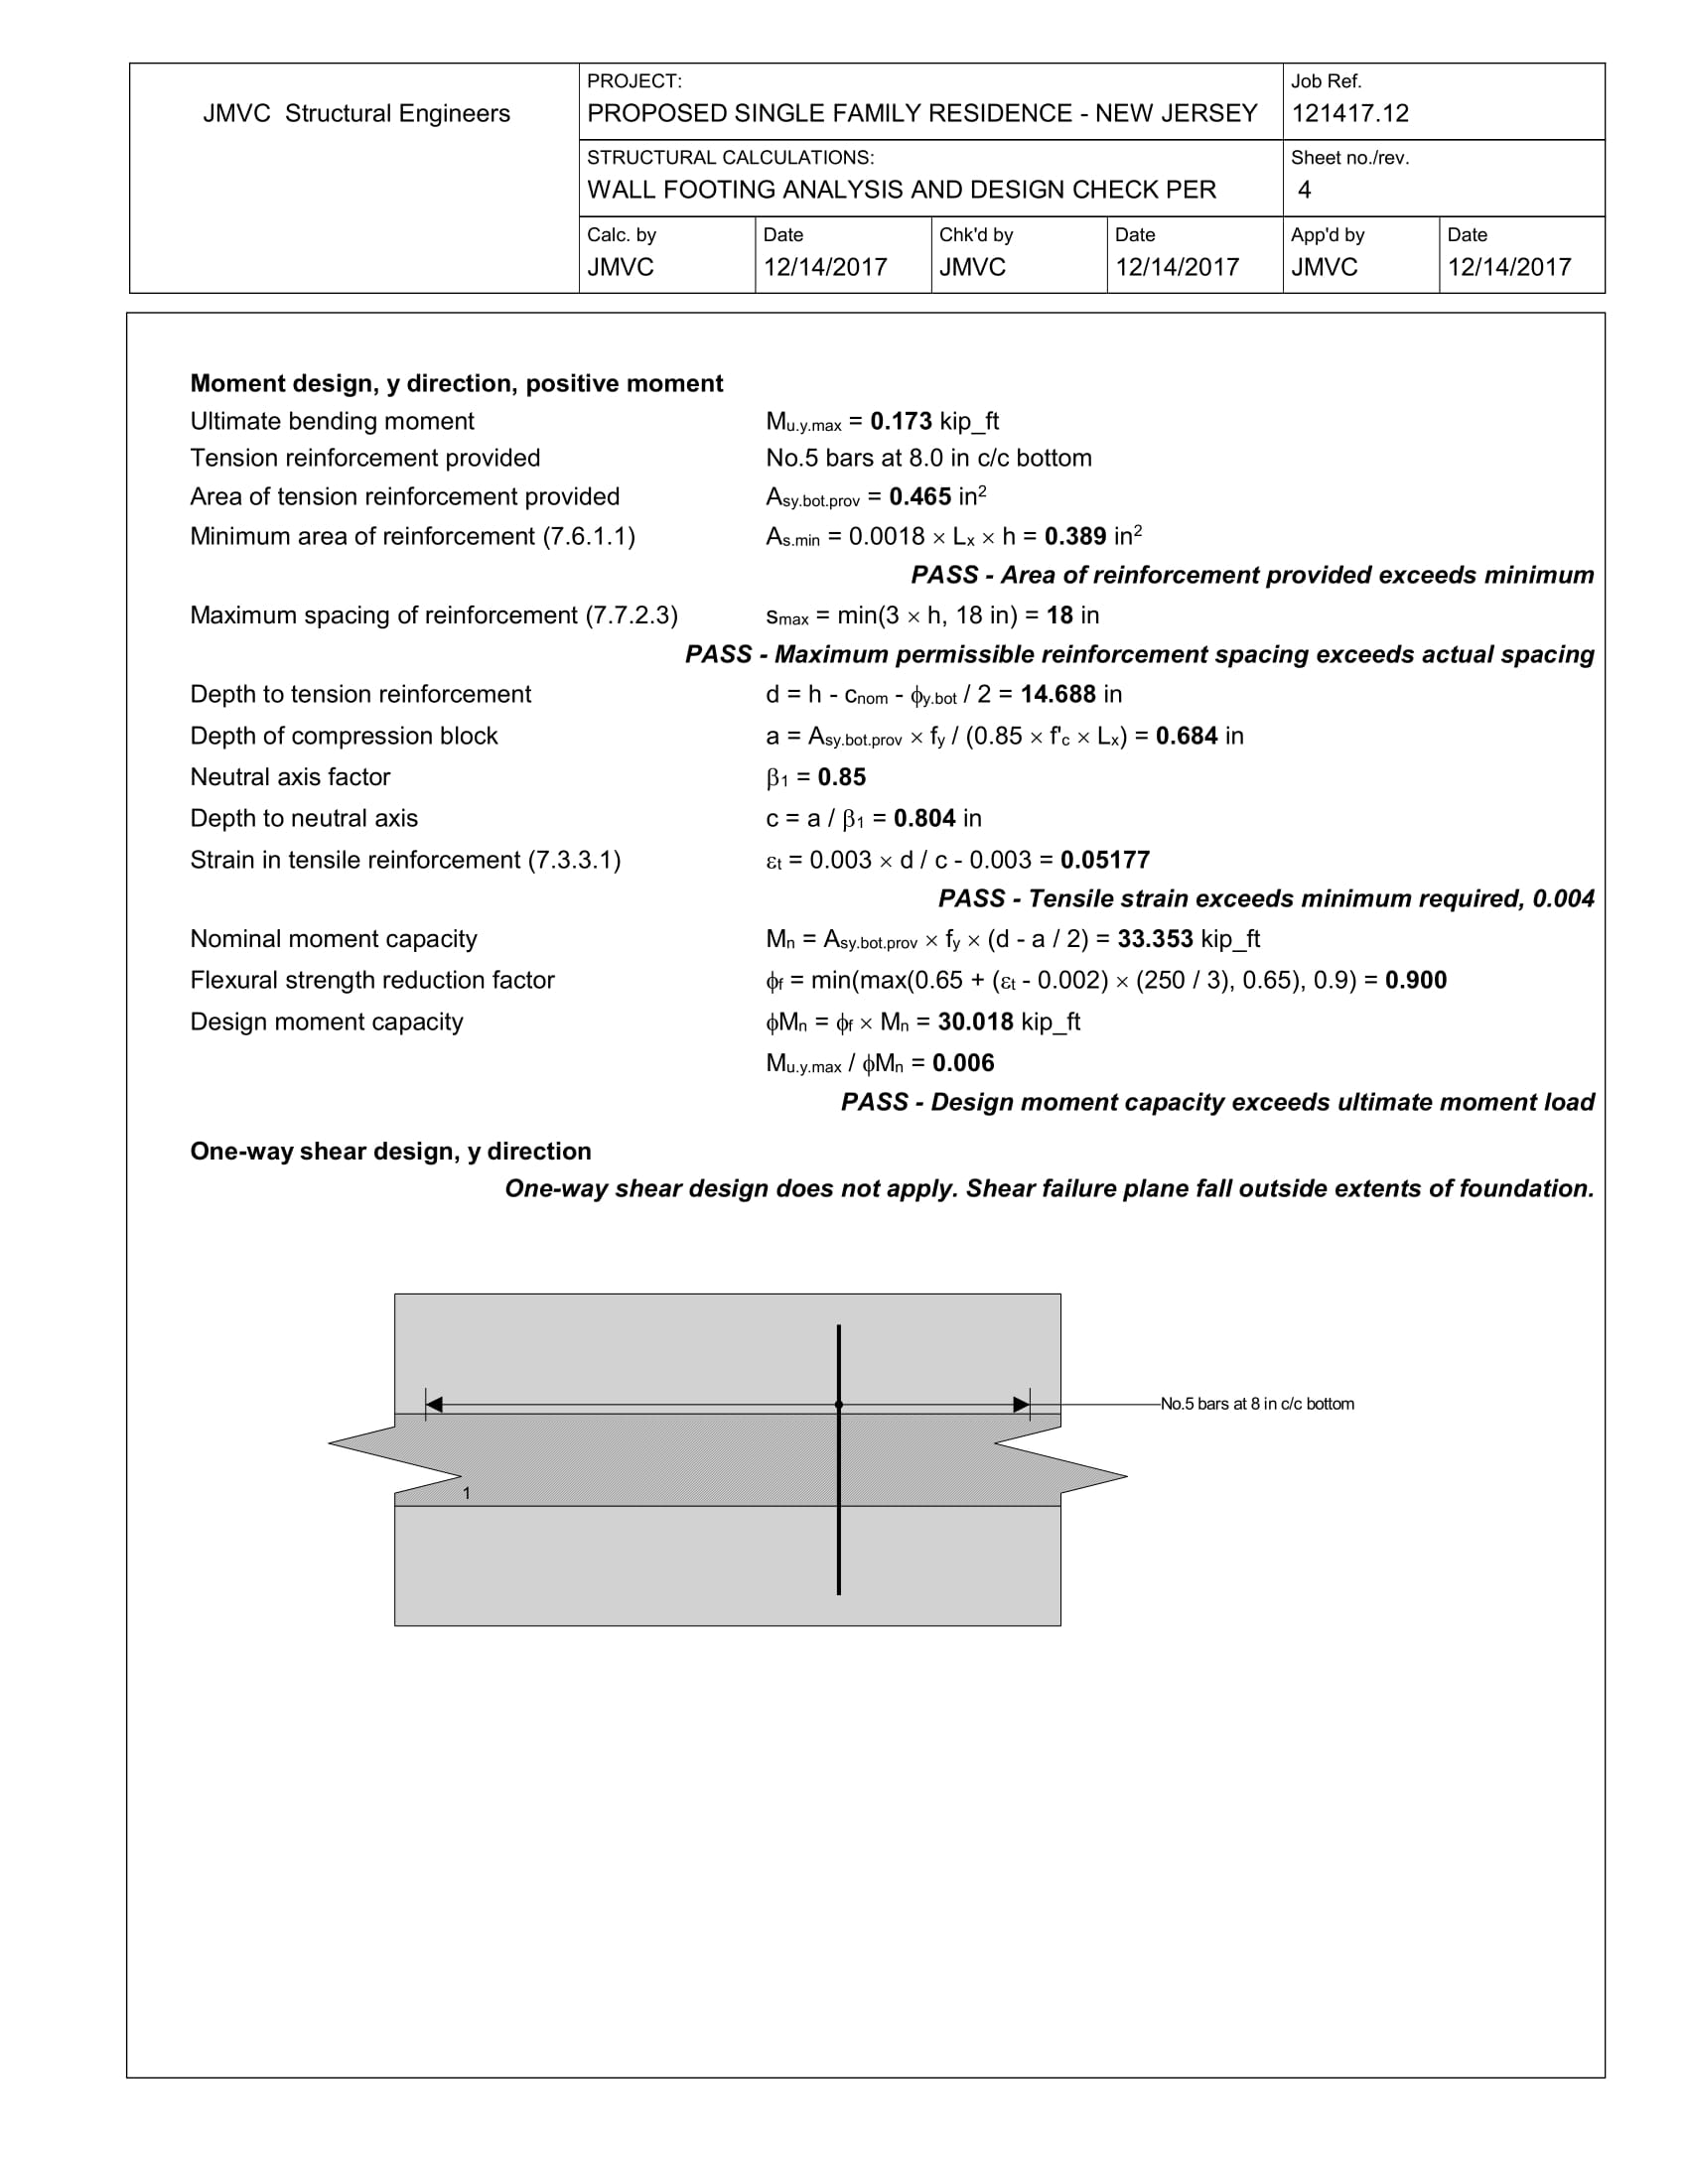 STRUCTURAL ANALYSIS AND DESIGN REPORT - SSG ENGINEERING